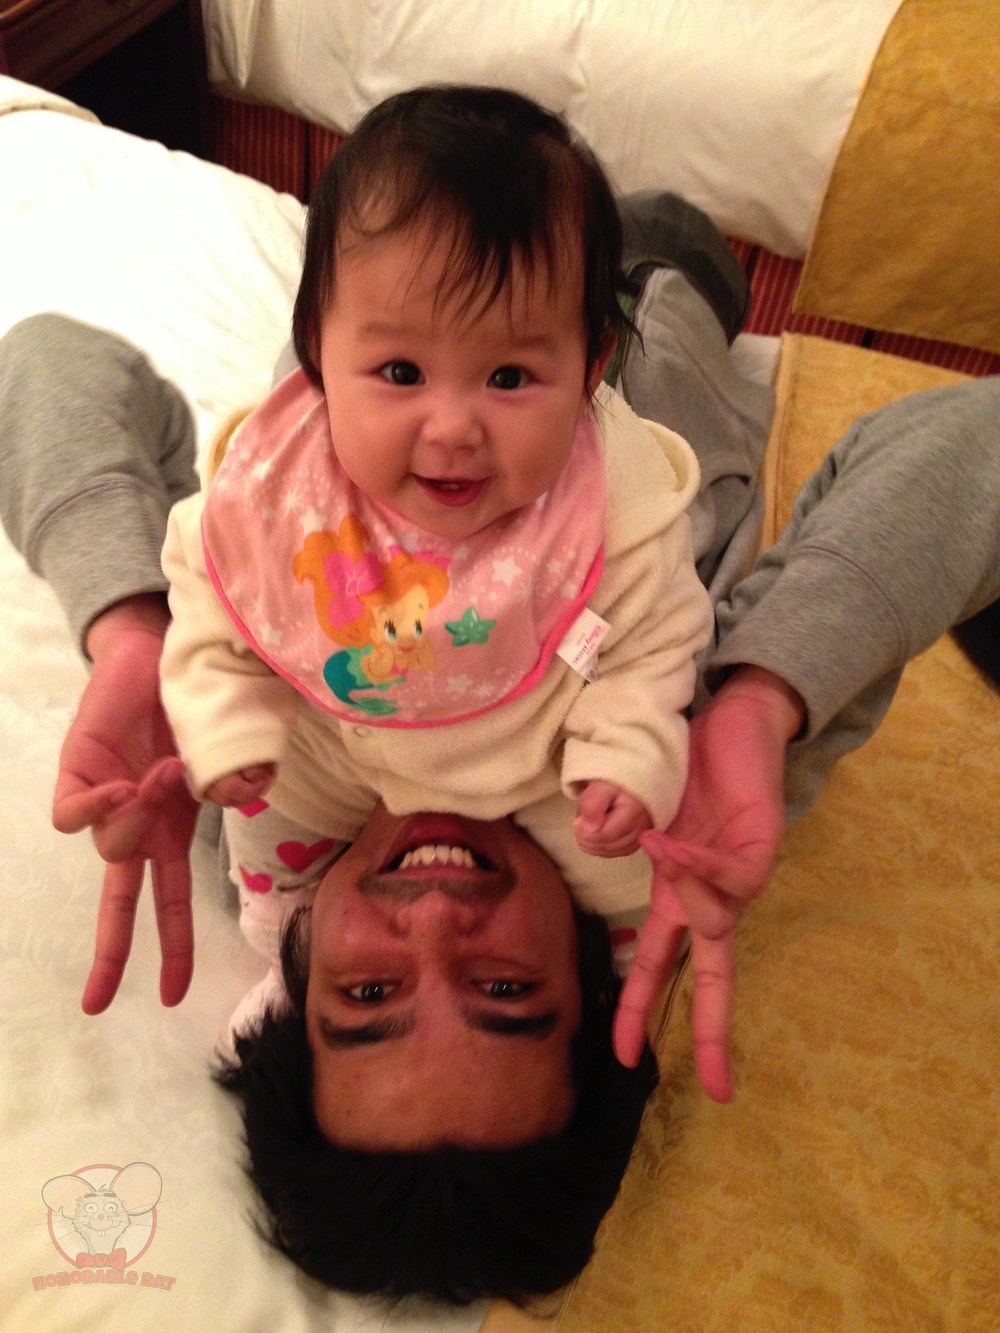 Little Mahina and I after changing her diapers. One happy father and daughter team.